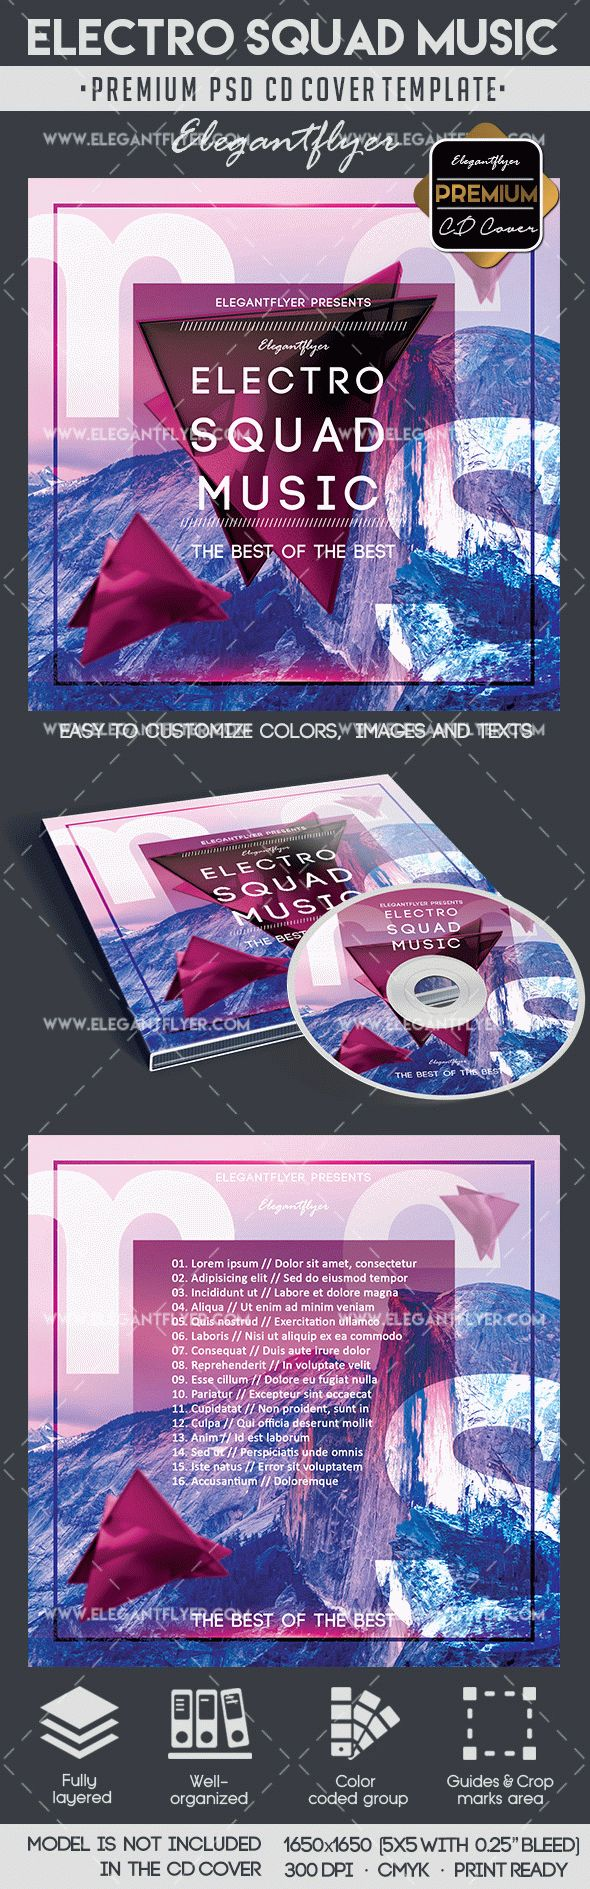 Electro Squad Music CD Cover Template